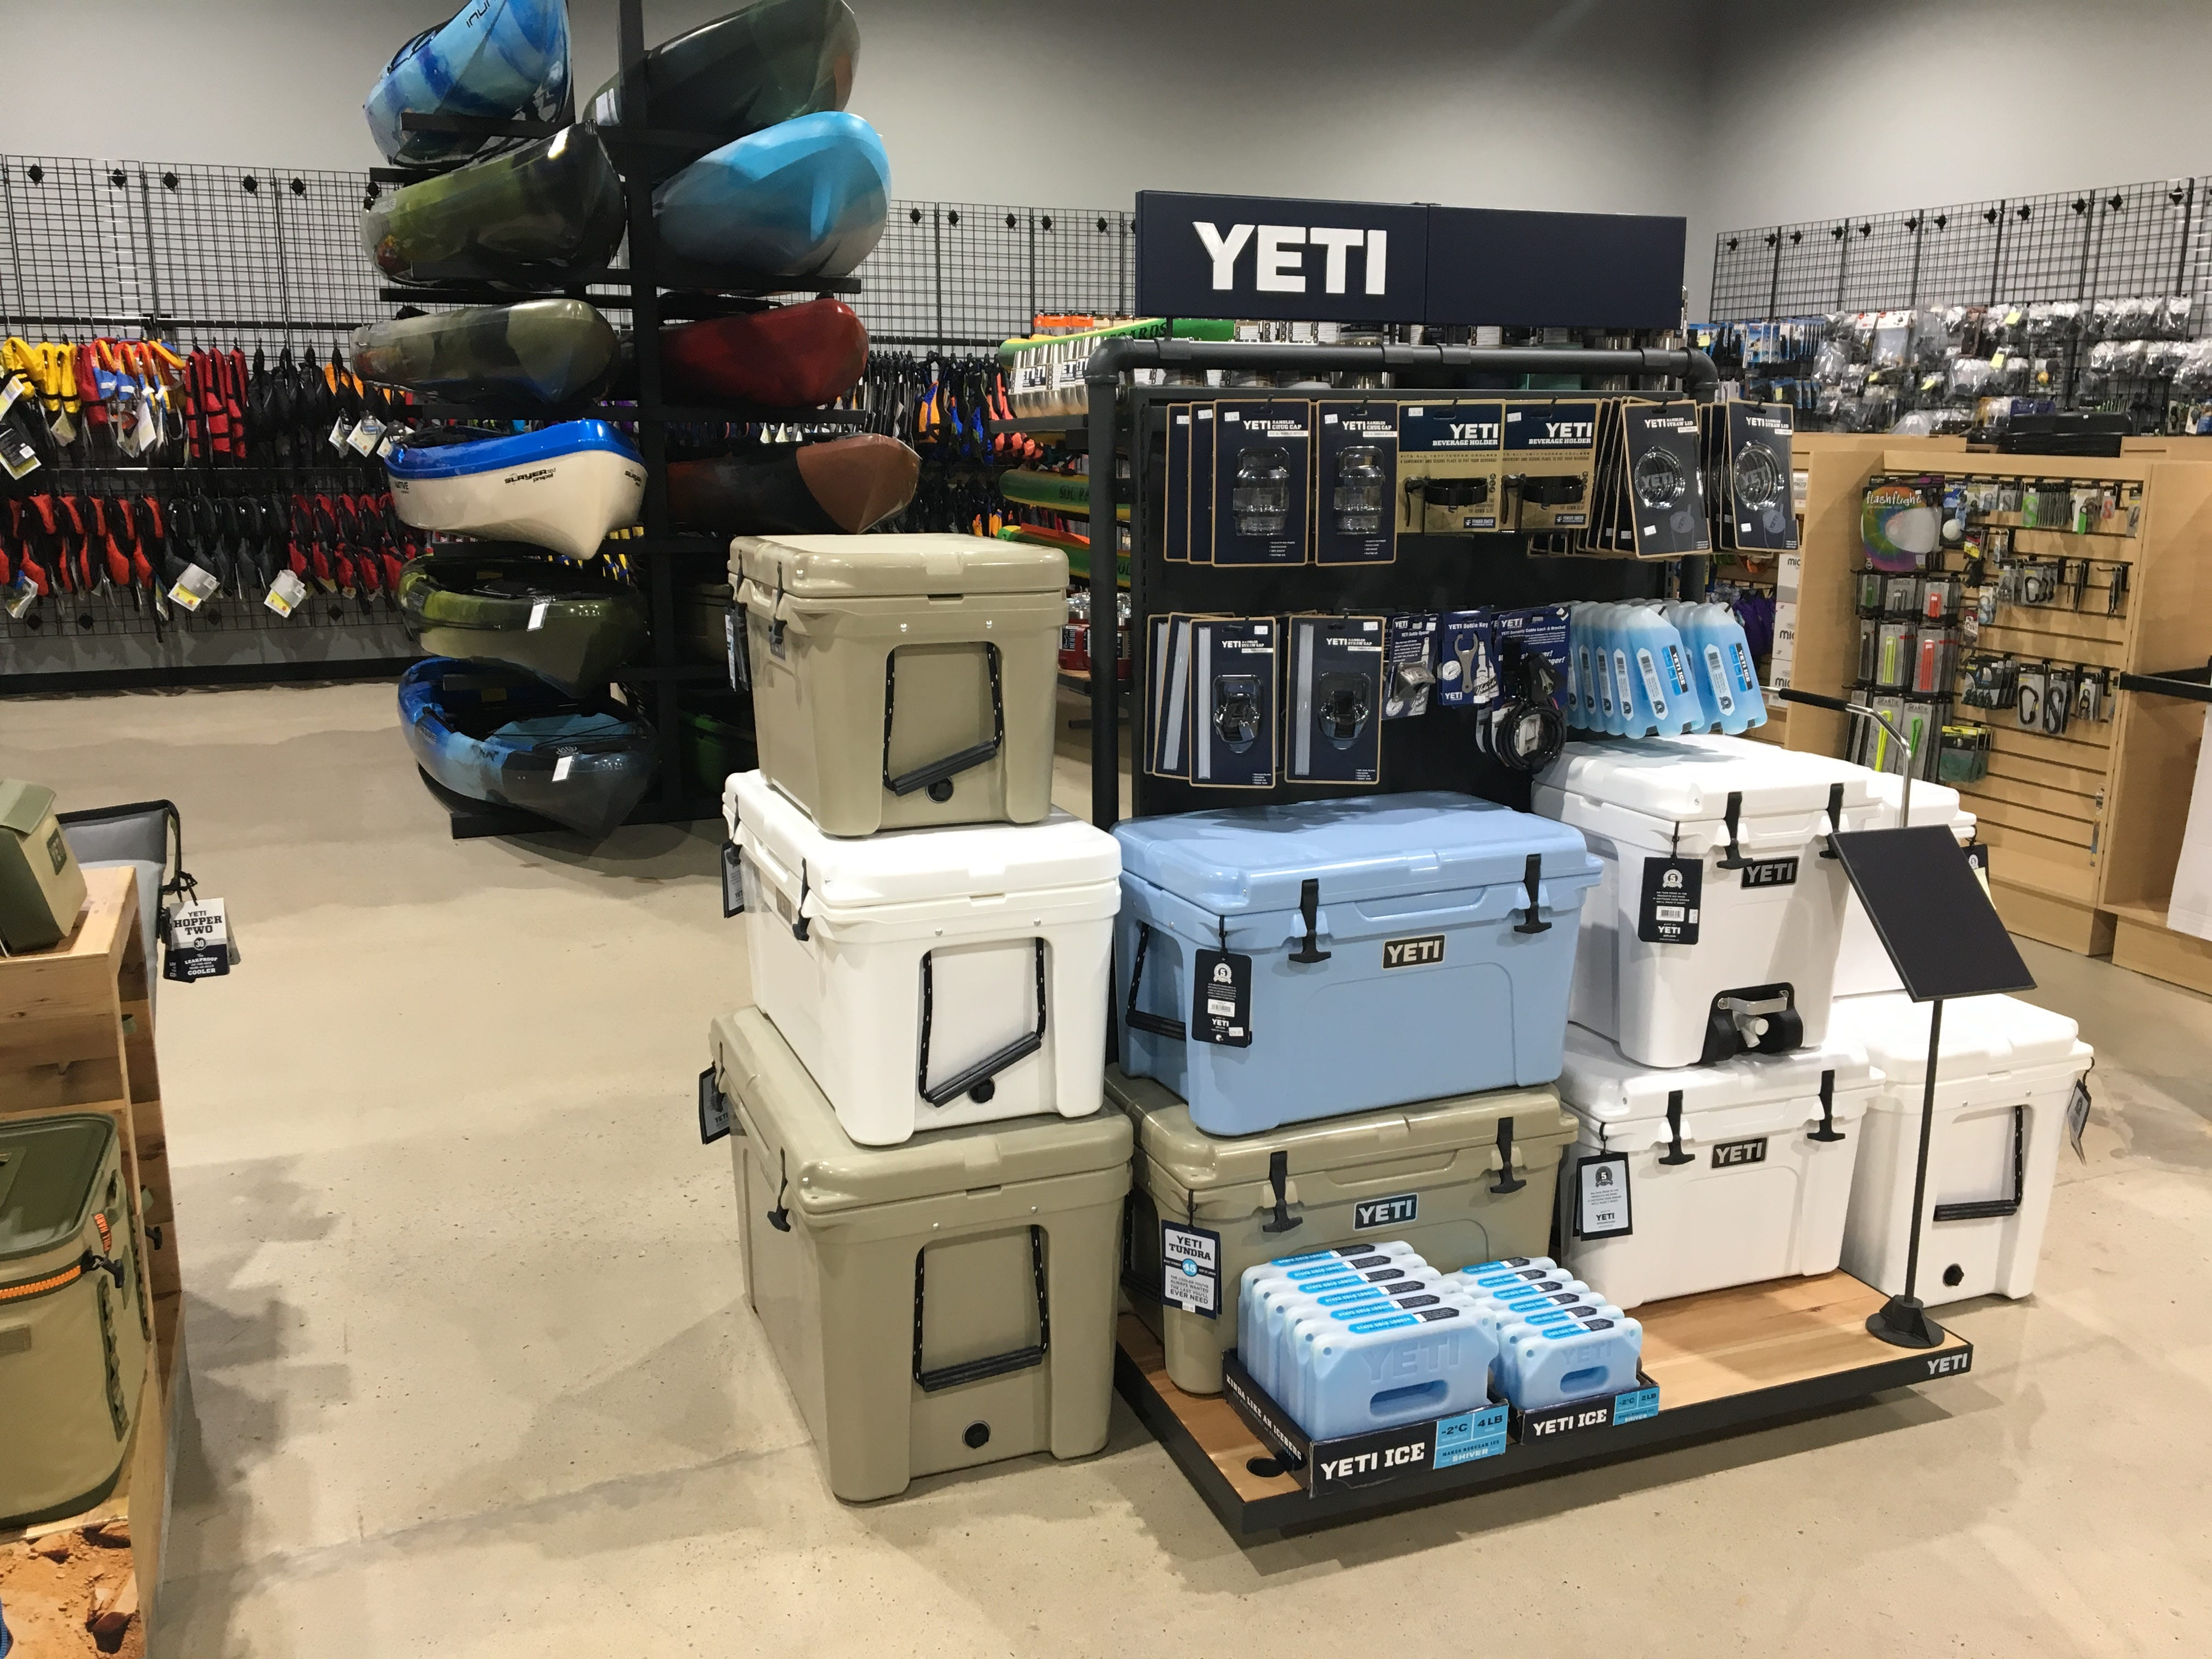 Hook1 outfitters in Murfreesboro has a variety of Yeti coolers and accessories.